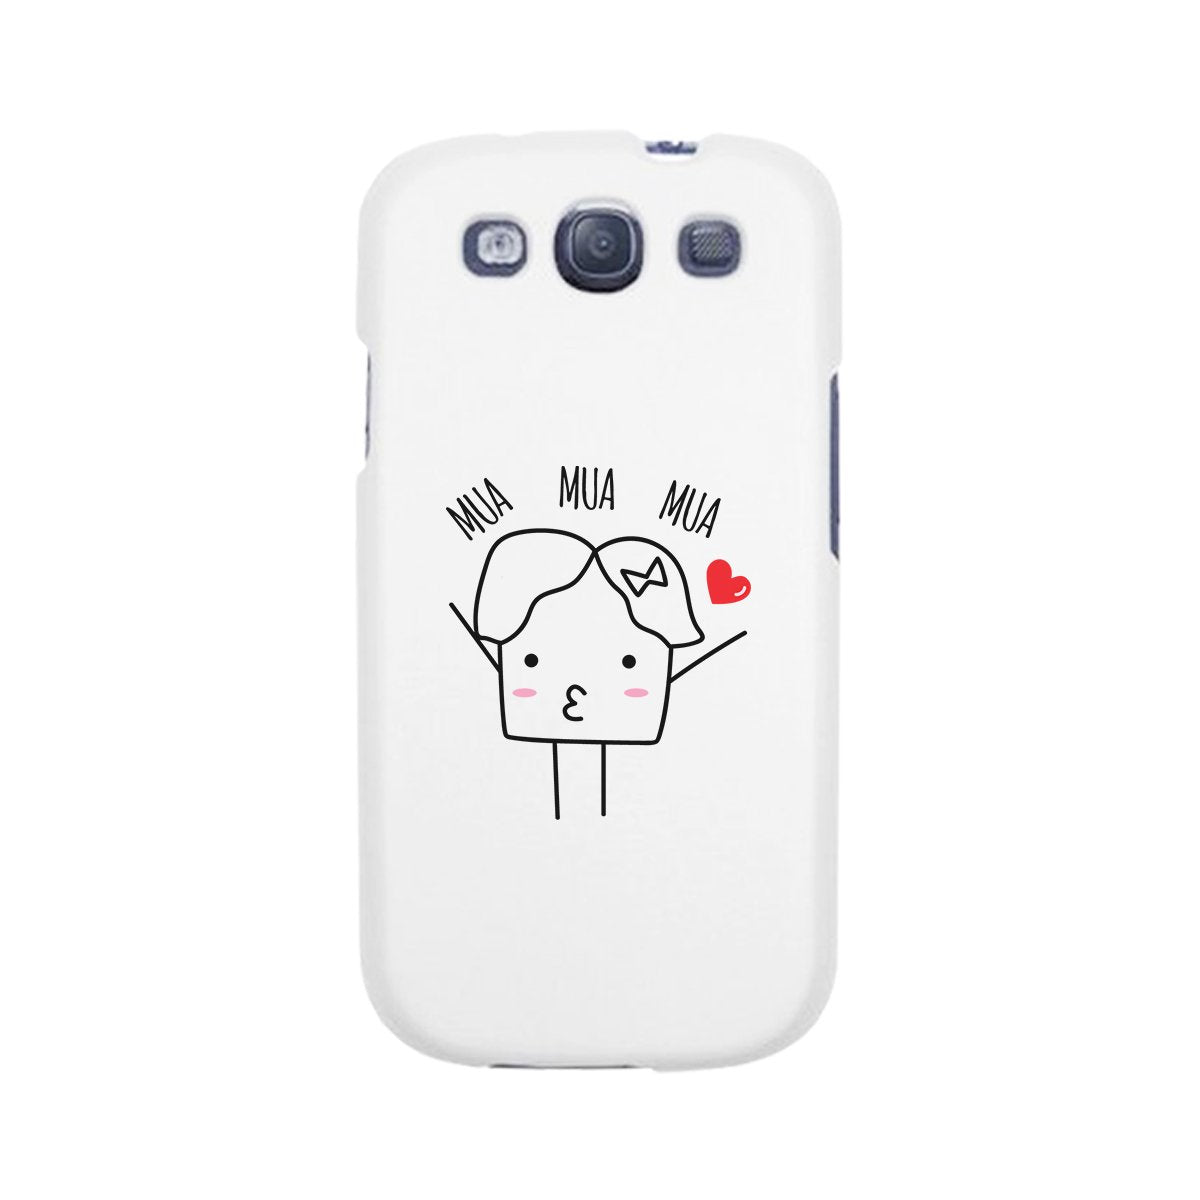 Mua Mua Mua-Right White Phone Case